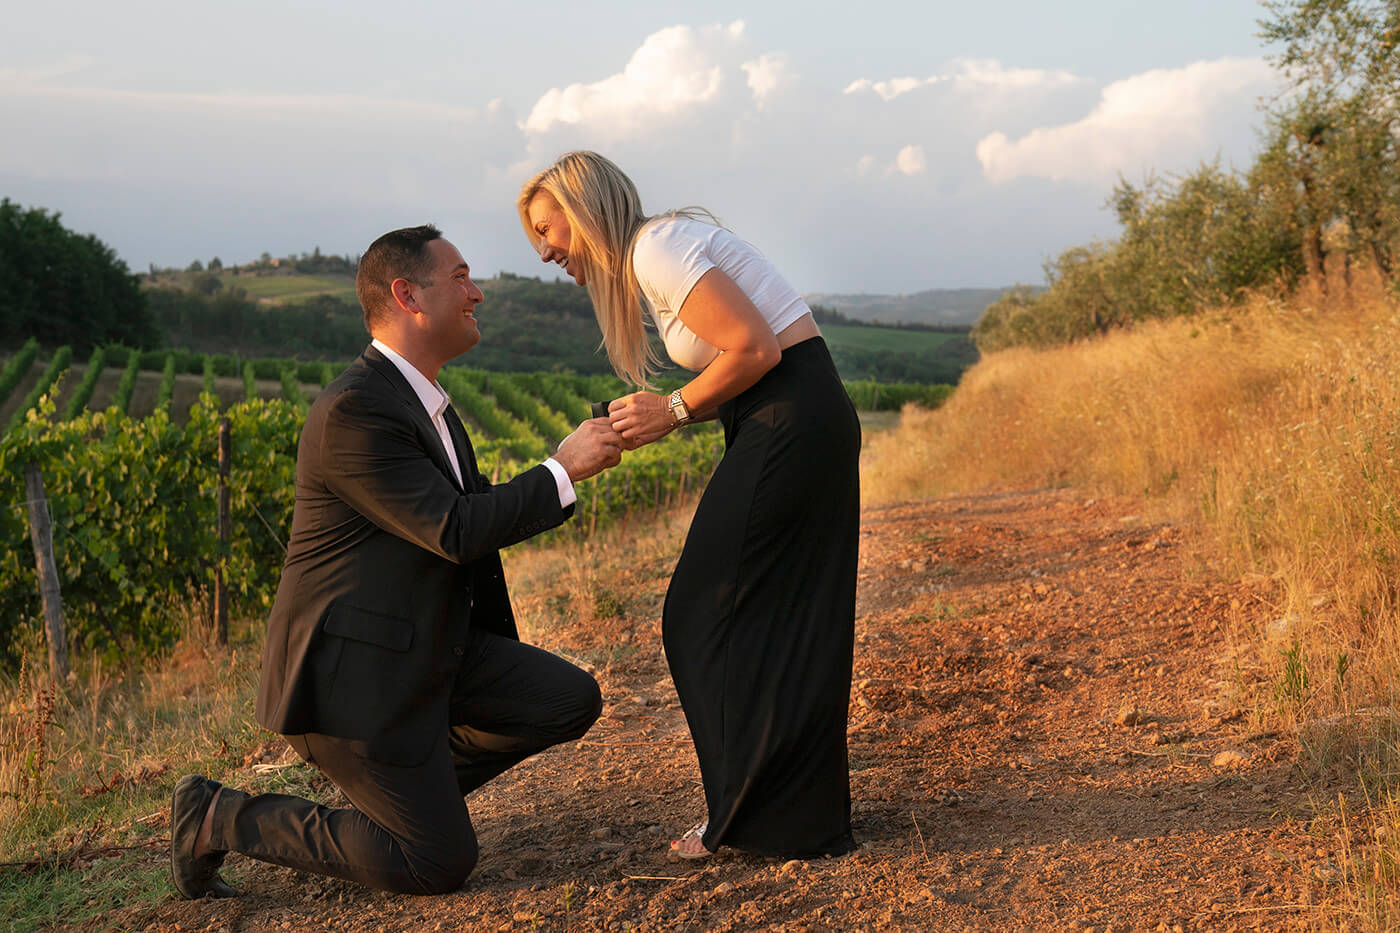 Cortona Wedding Photographer Based In Tuscany - Duccio Argentini